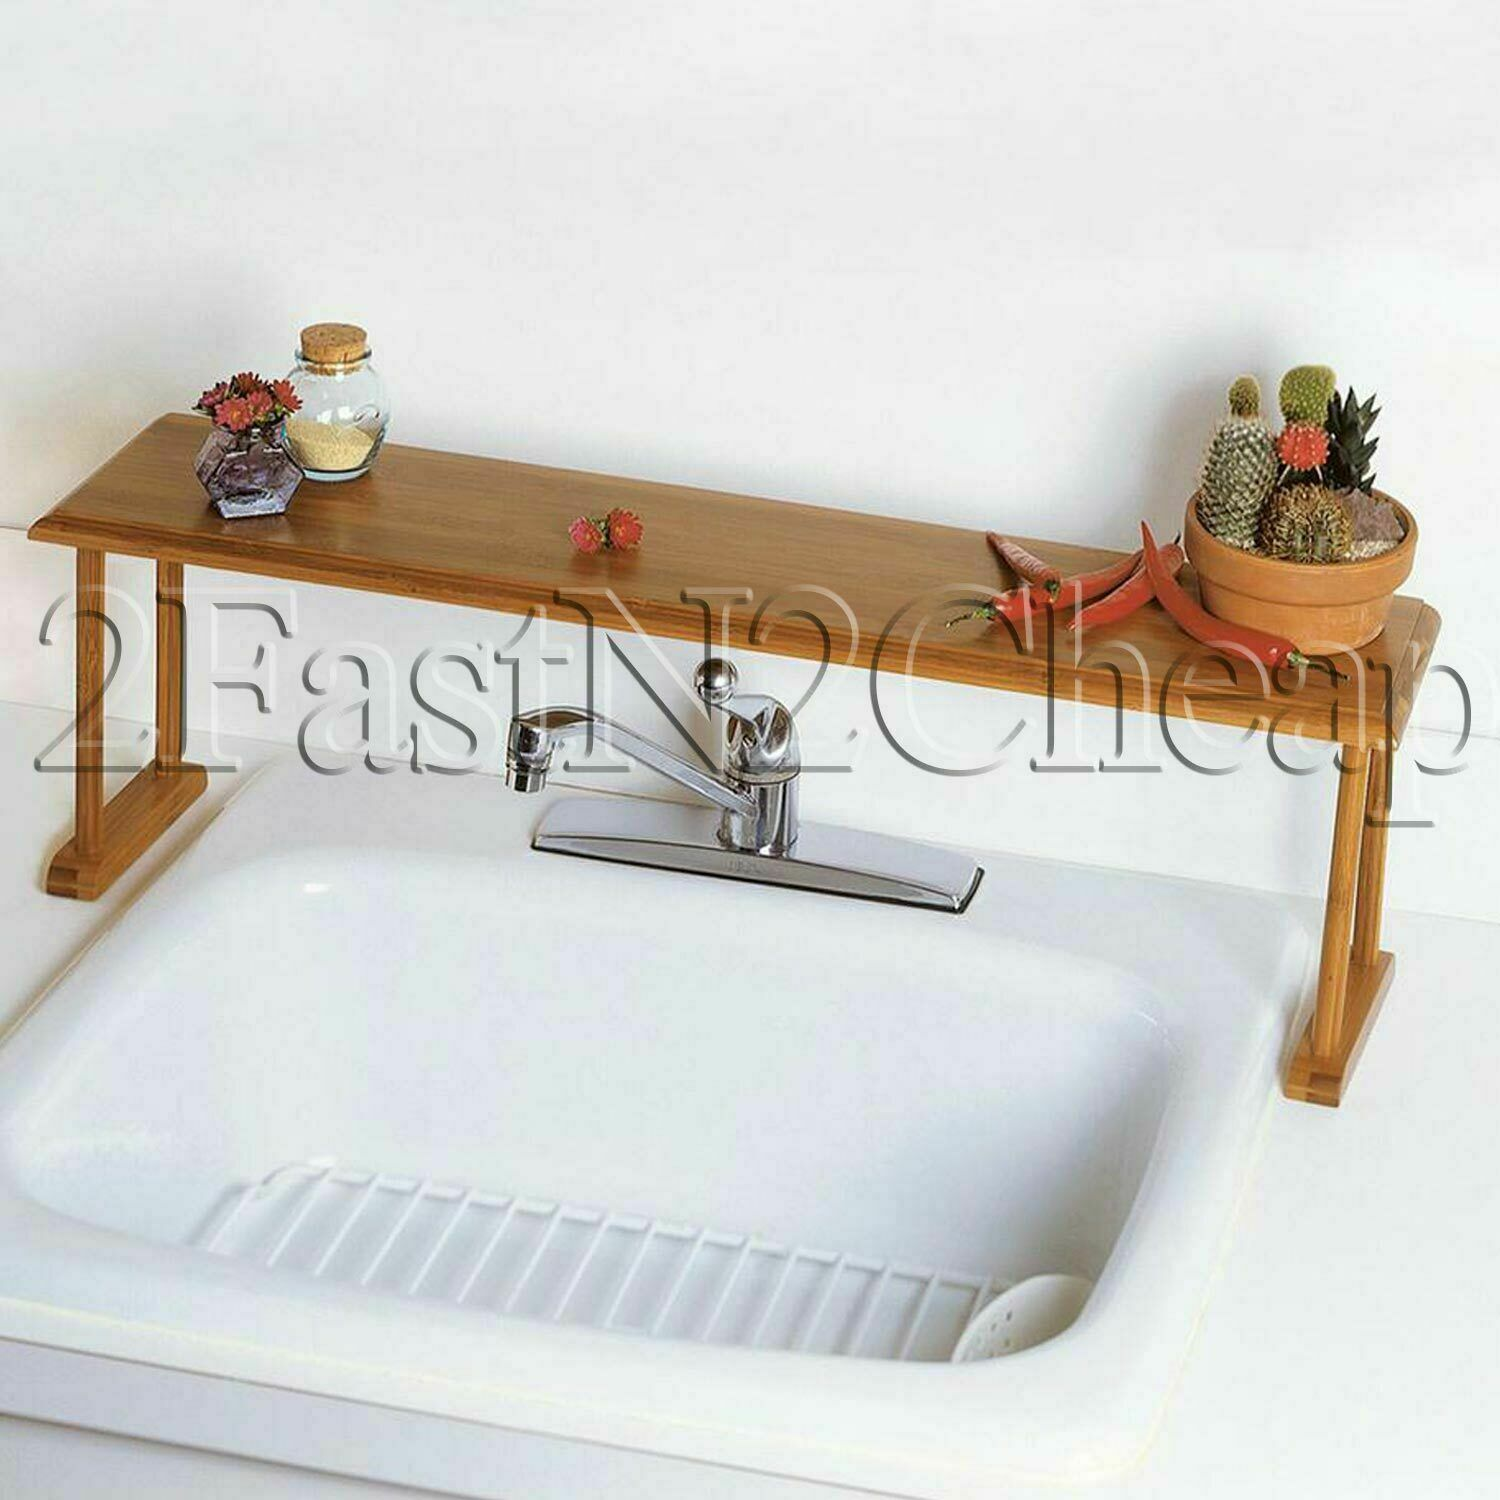 Home Indoor Kitchen Storage Organizer Over-The-Sink Bamboo S